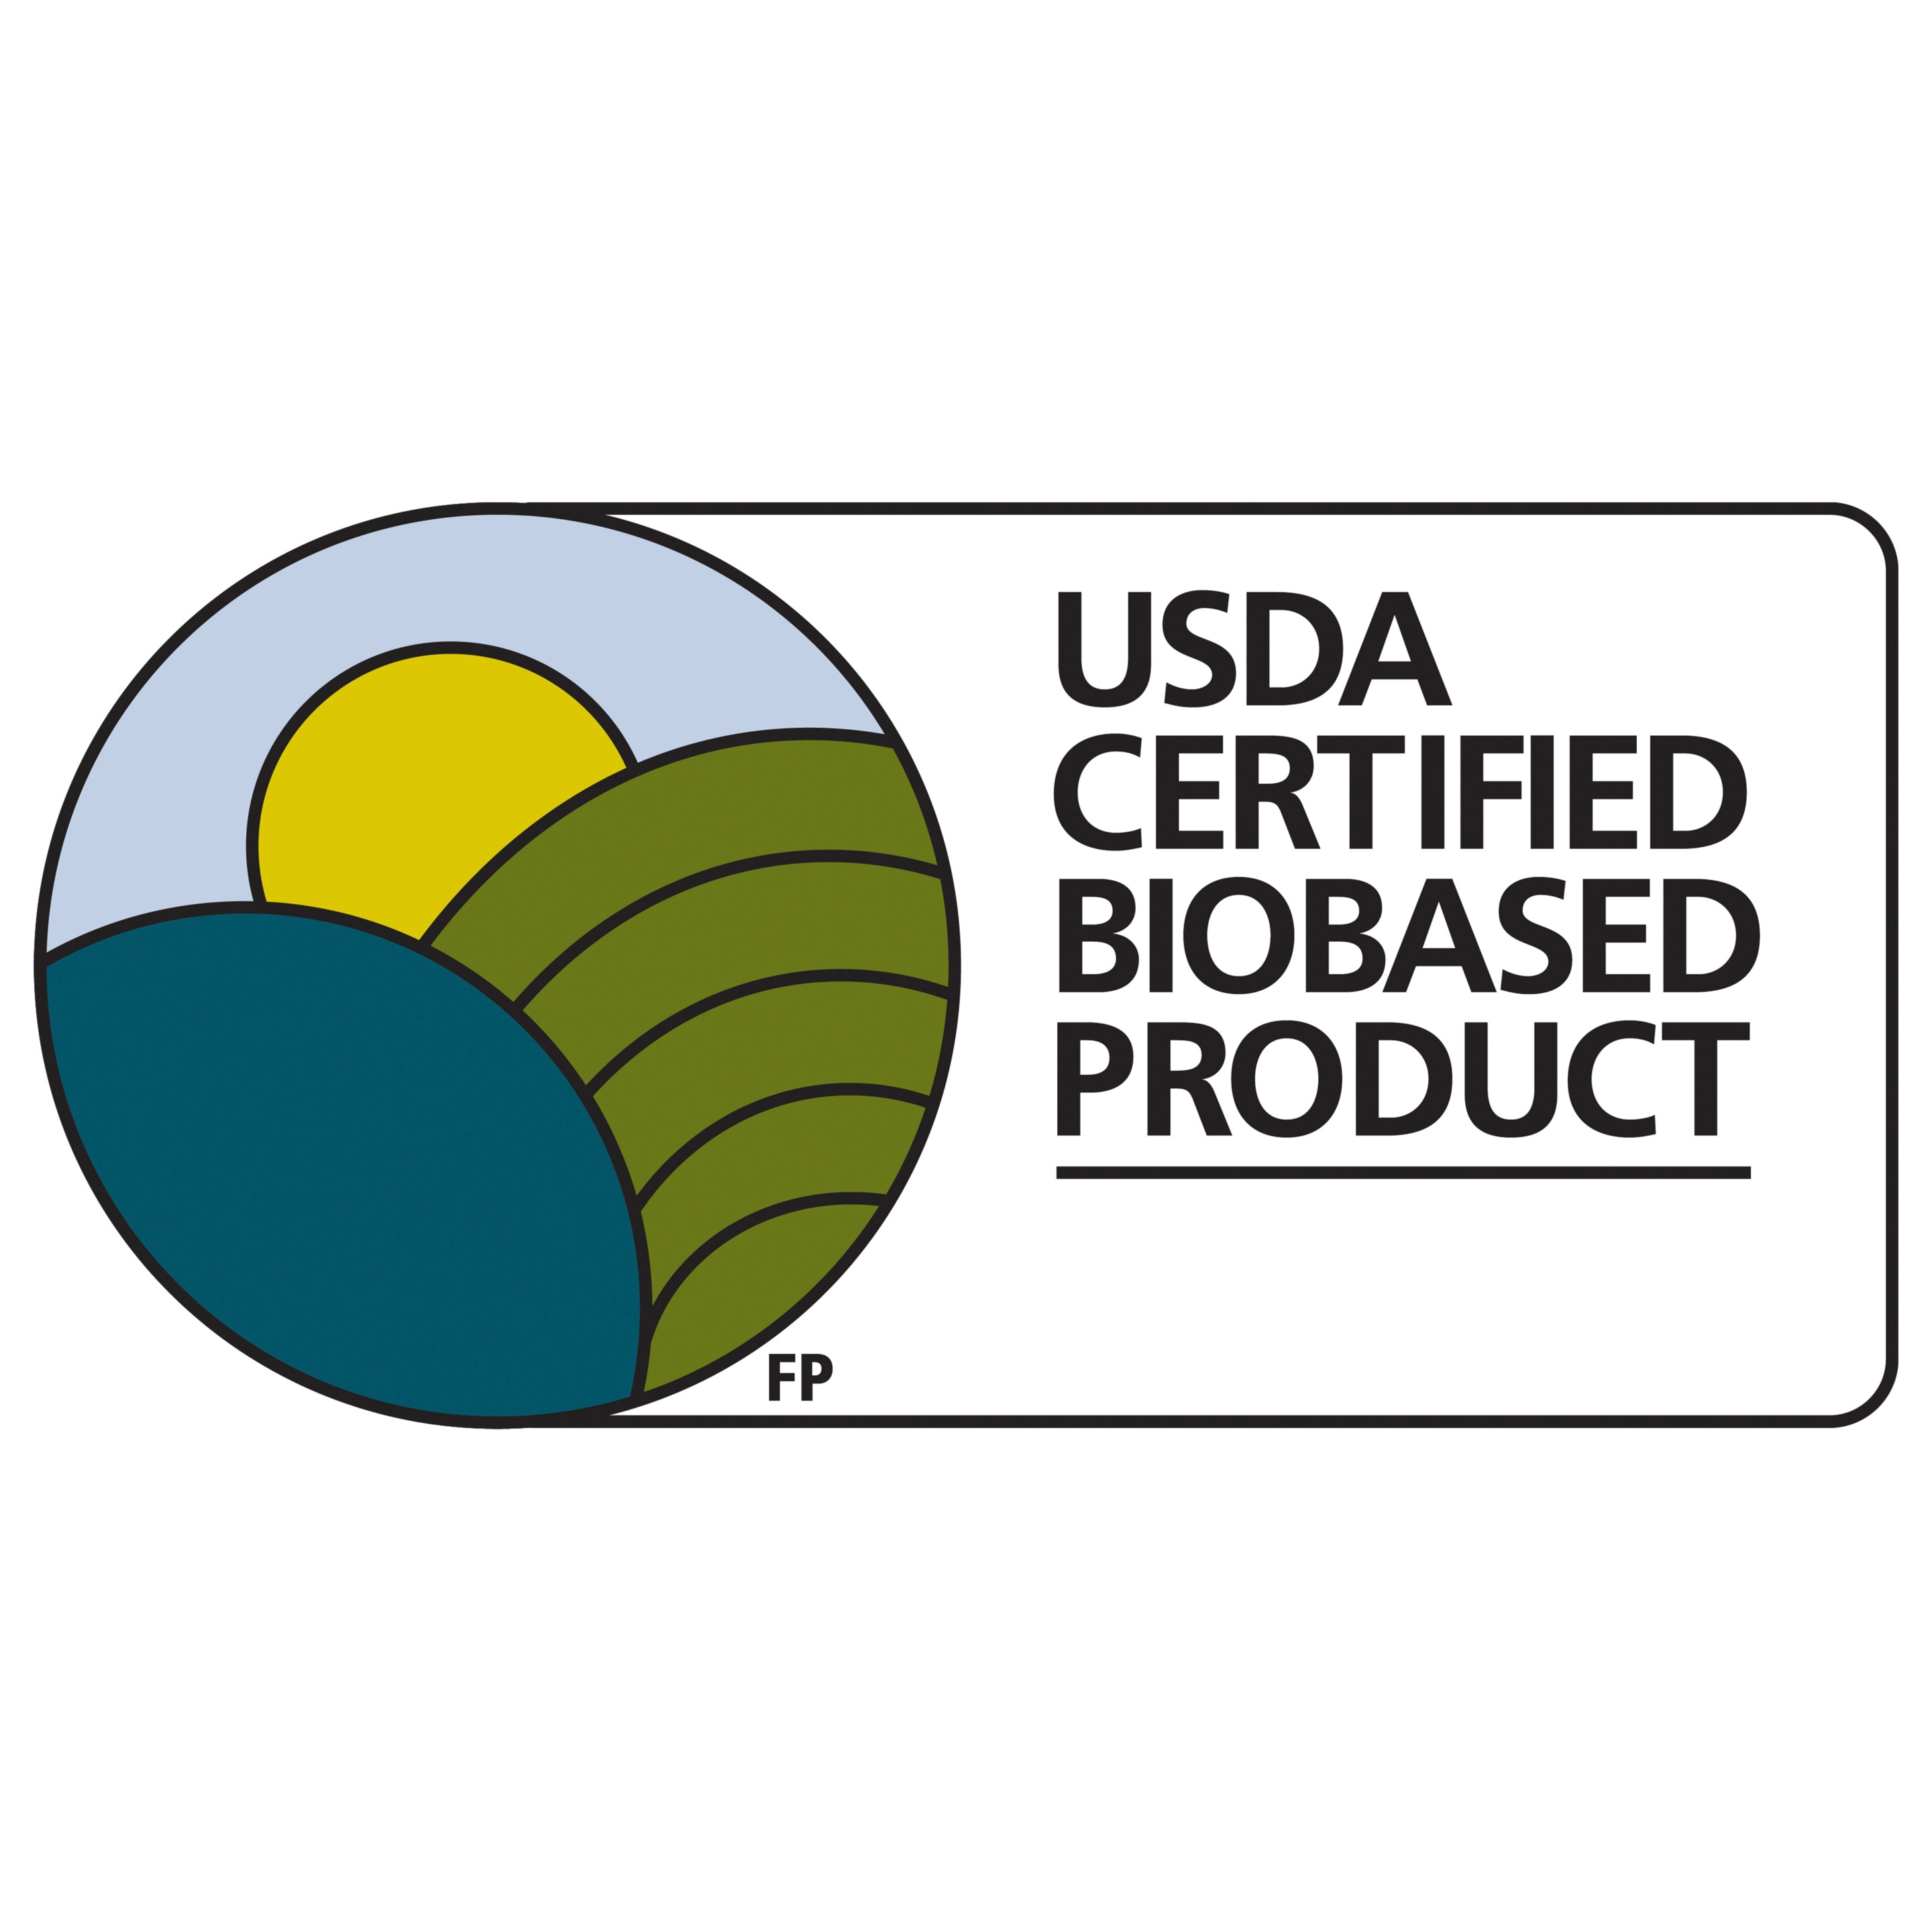 USDA Certified Biobased